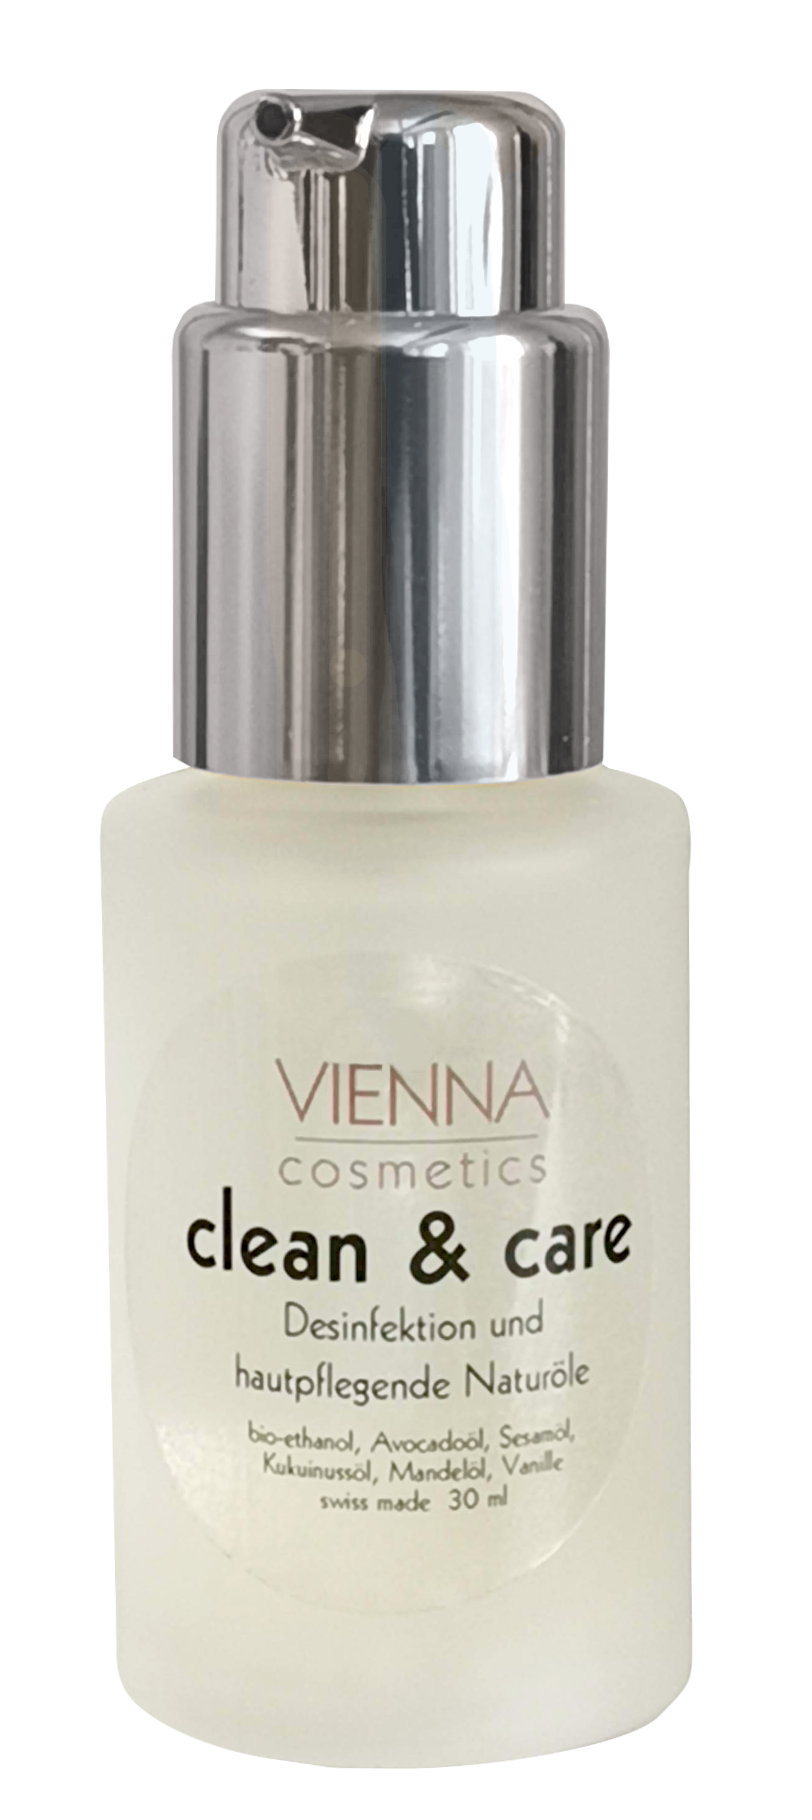 VIENNA clean and care